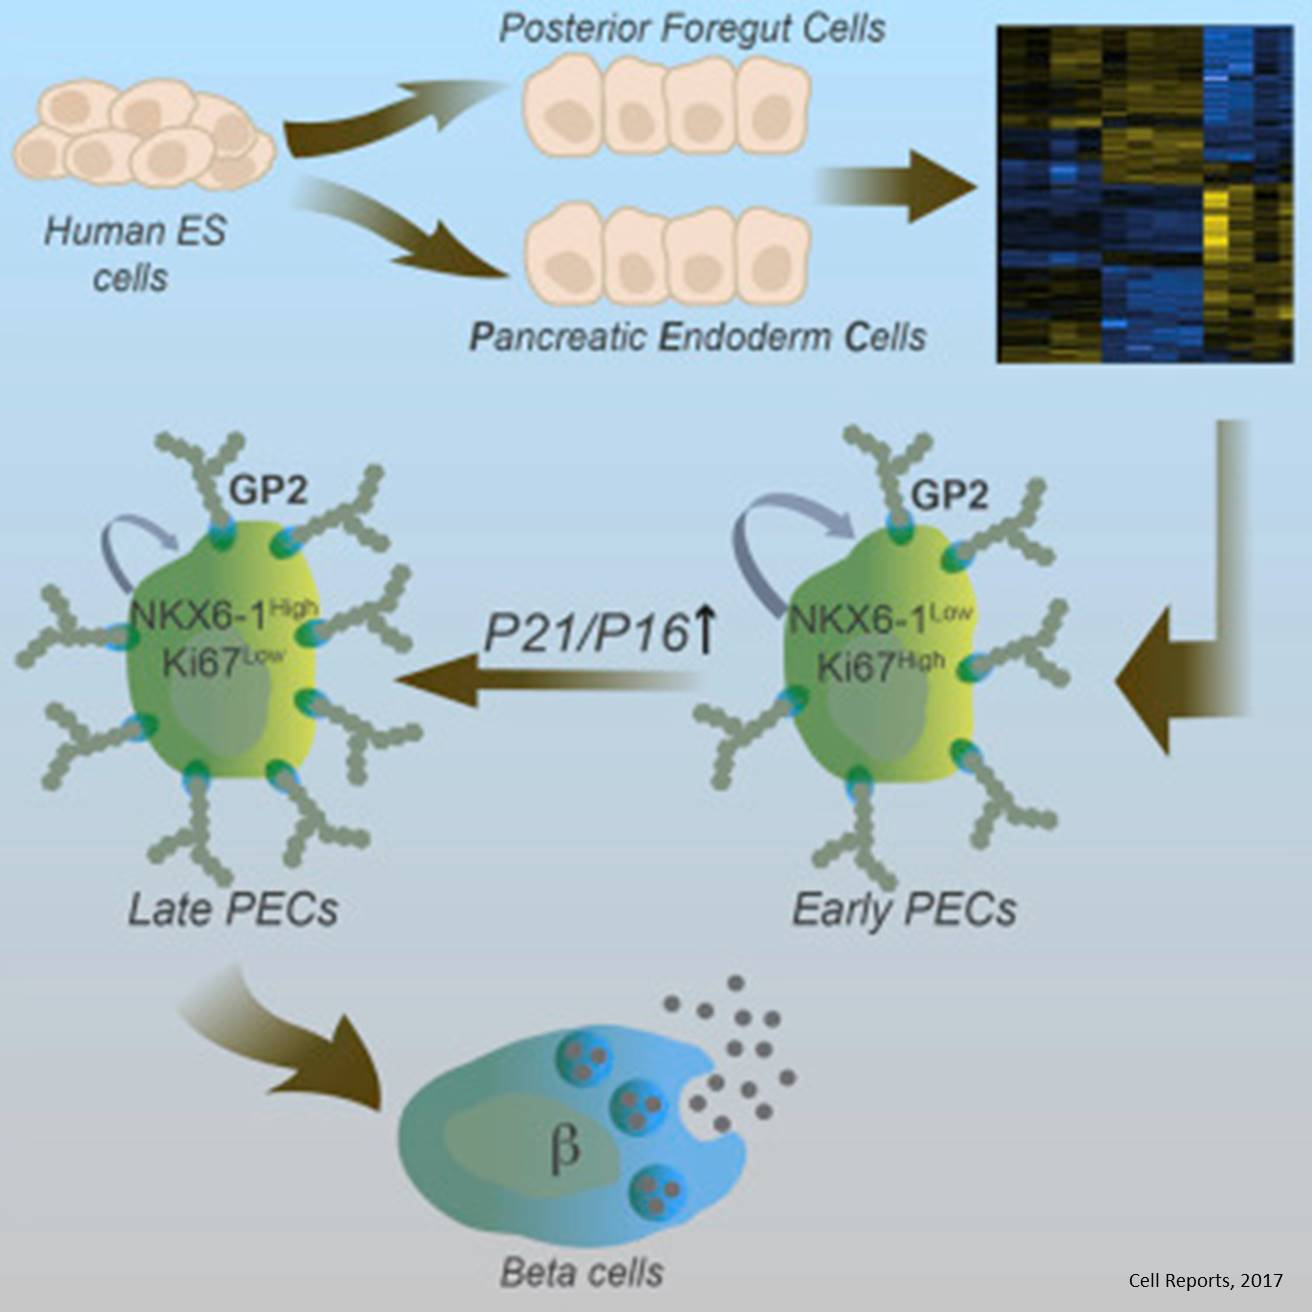 Efficient generation of pancreatic beta cells from human embryonic stem cells